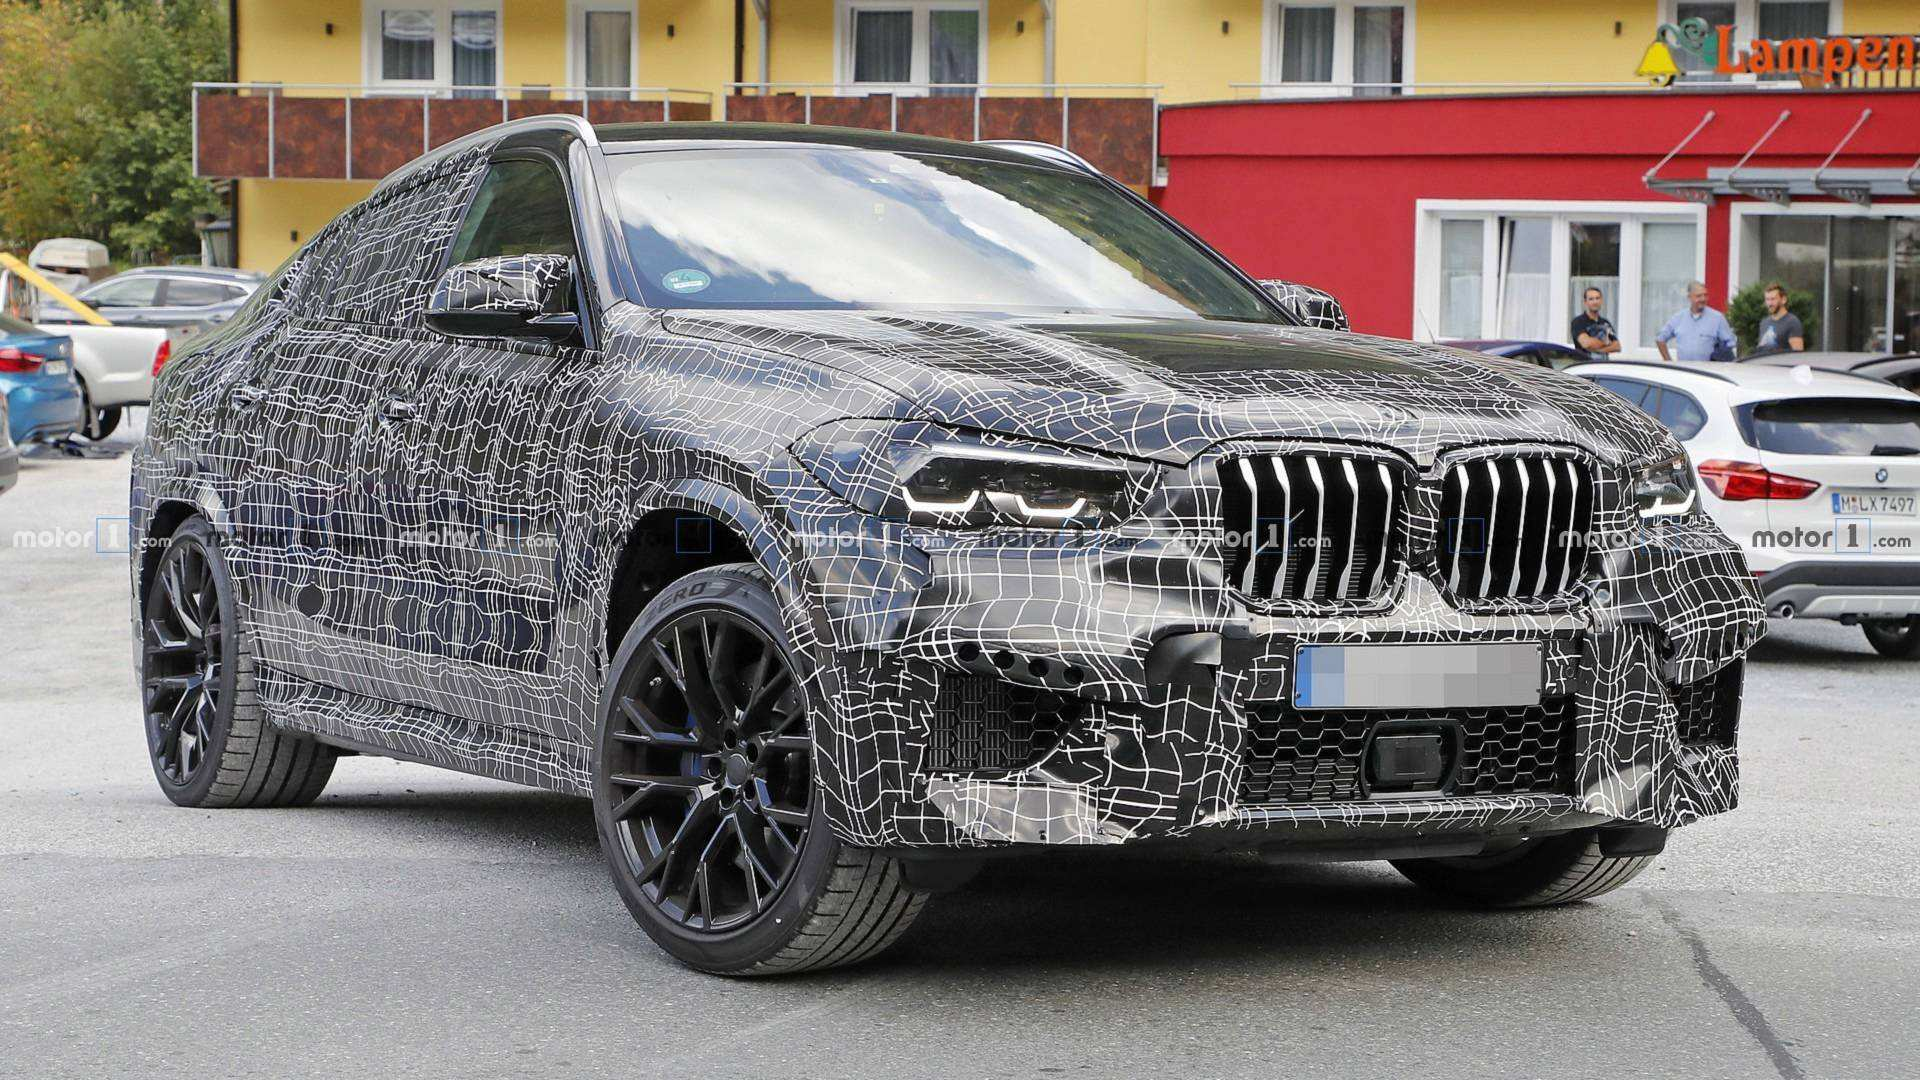 64 All New BMW X6 2020 Rumors for BMW X6 2020